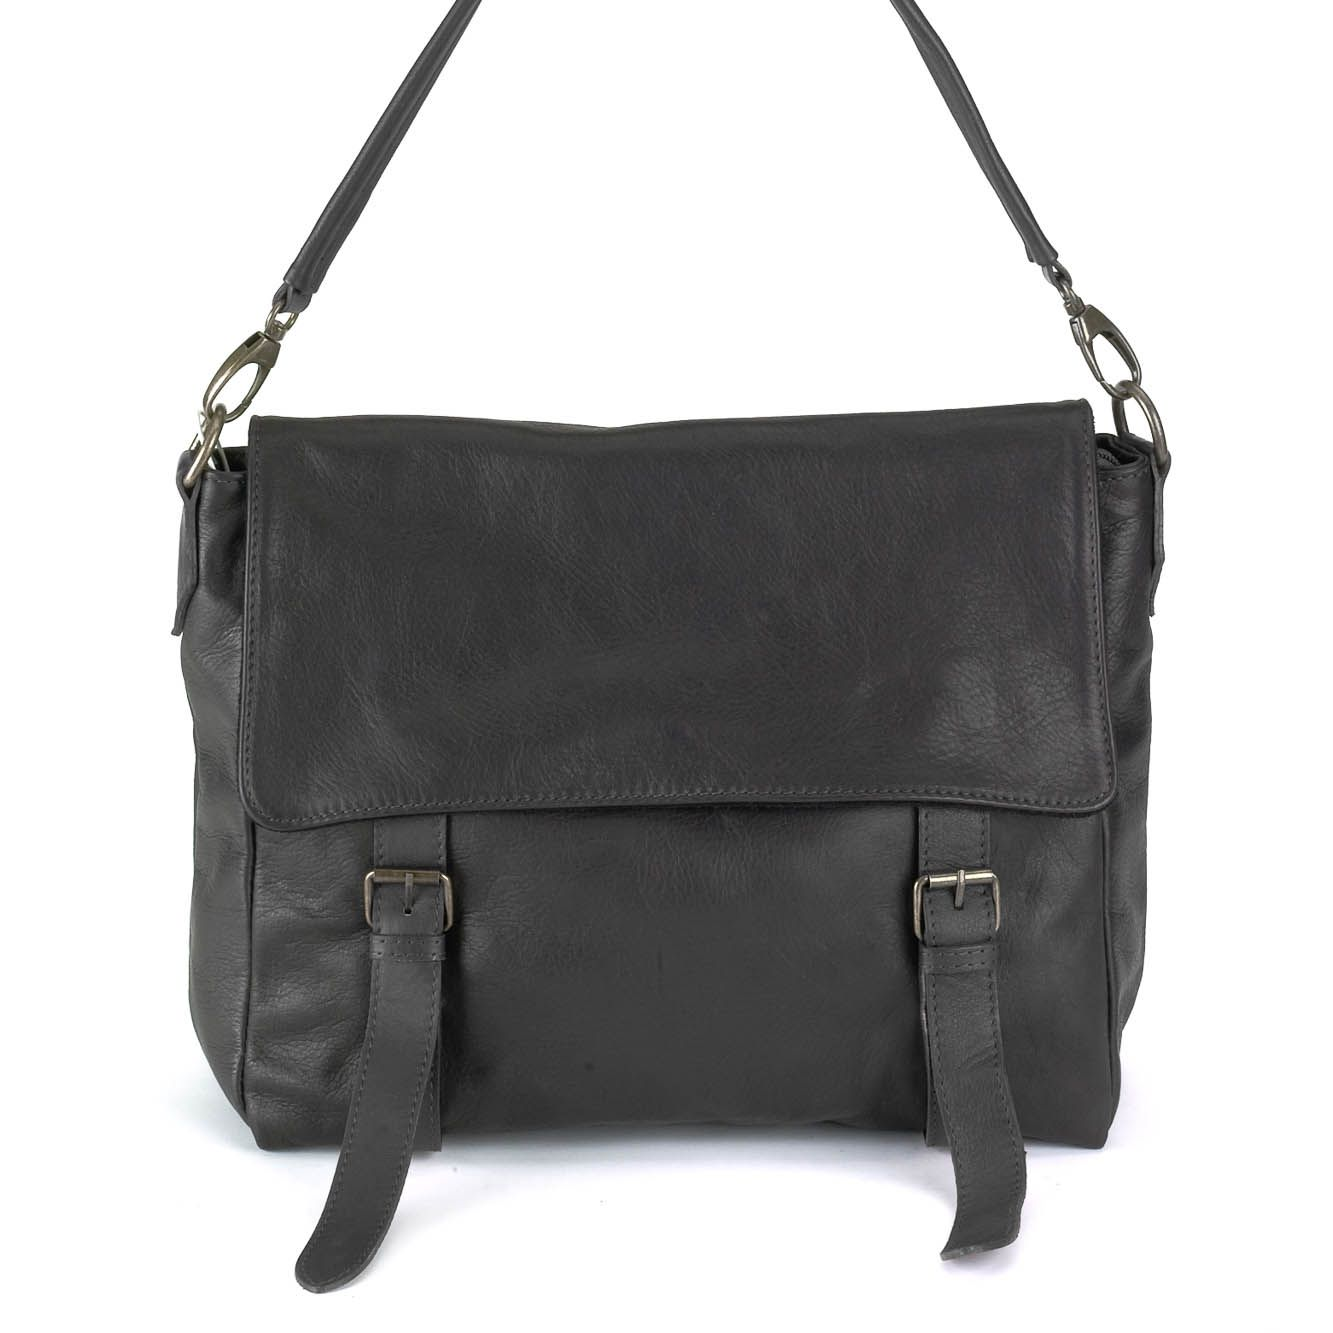 """Corecode Handbag Collection Genuine Italian Calfskin """"Sauvage"""" treated leather classic school styled messenger bag.  http://www.core-code.com/product/bg-w003-blk/ [$310.00]  #messengerbag #leathermessengerbag #leatherhandbag #italianleatherhandbag #messengerhandbag #genuineitaliancalfskin  #calfskin  #sauvagefinished"""